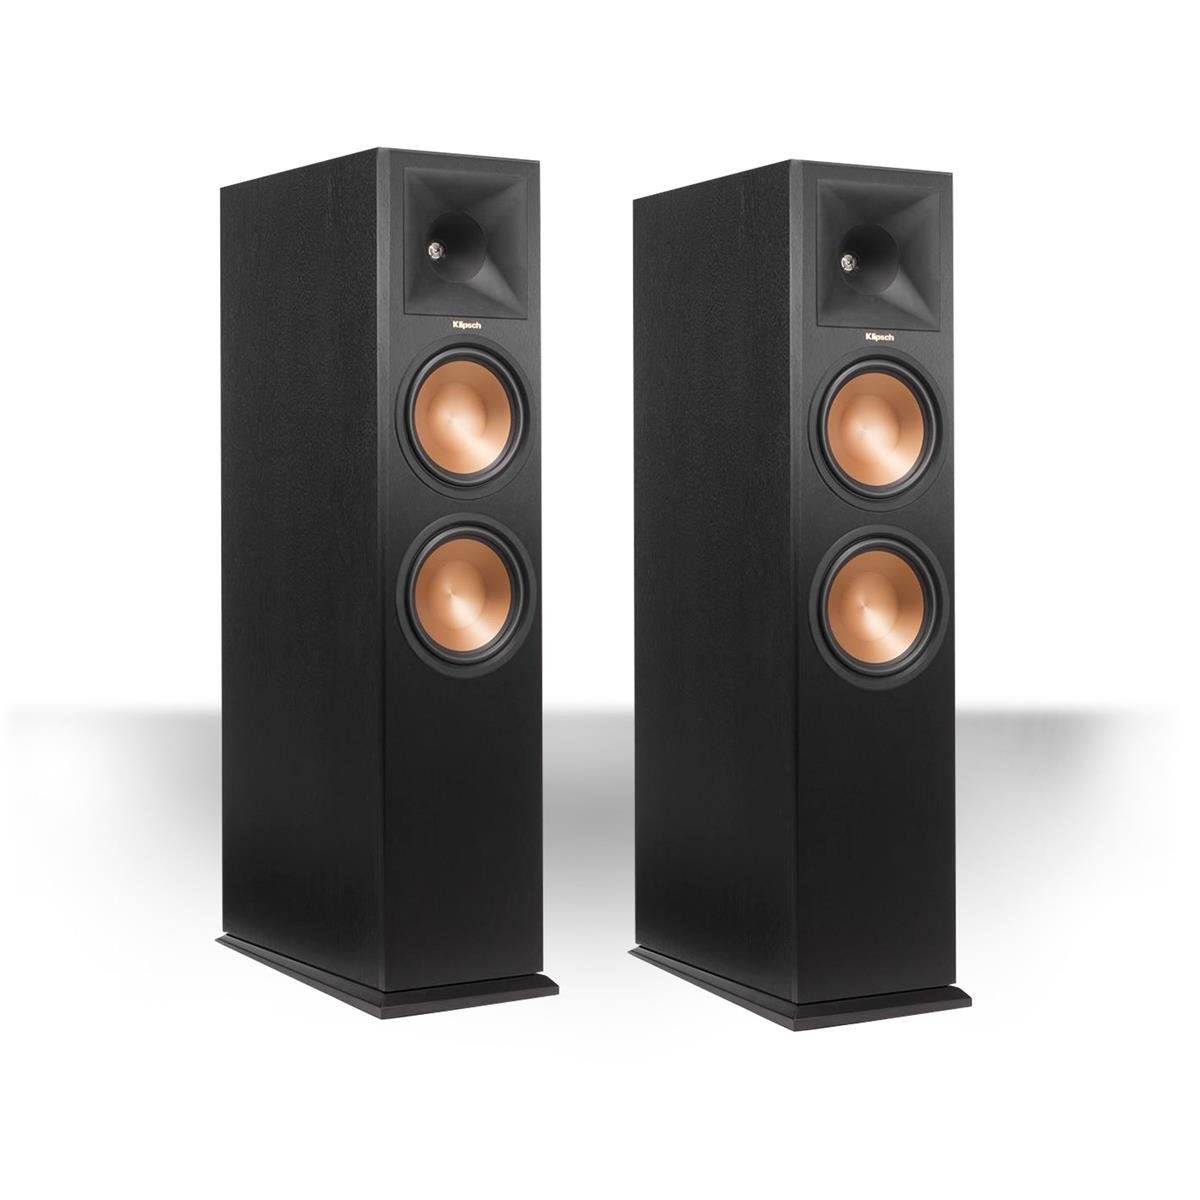 Klipsch RP280FA Tower Speaker w/ Dolby Atmos Height Channel (Black Pair) …